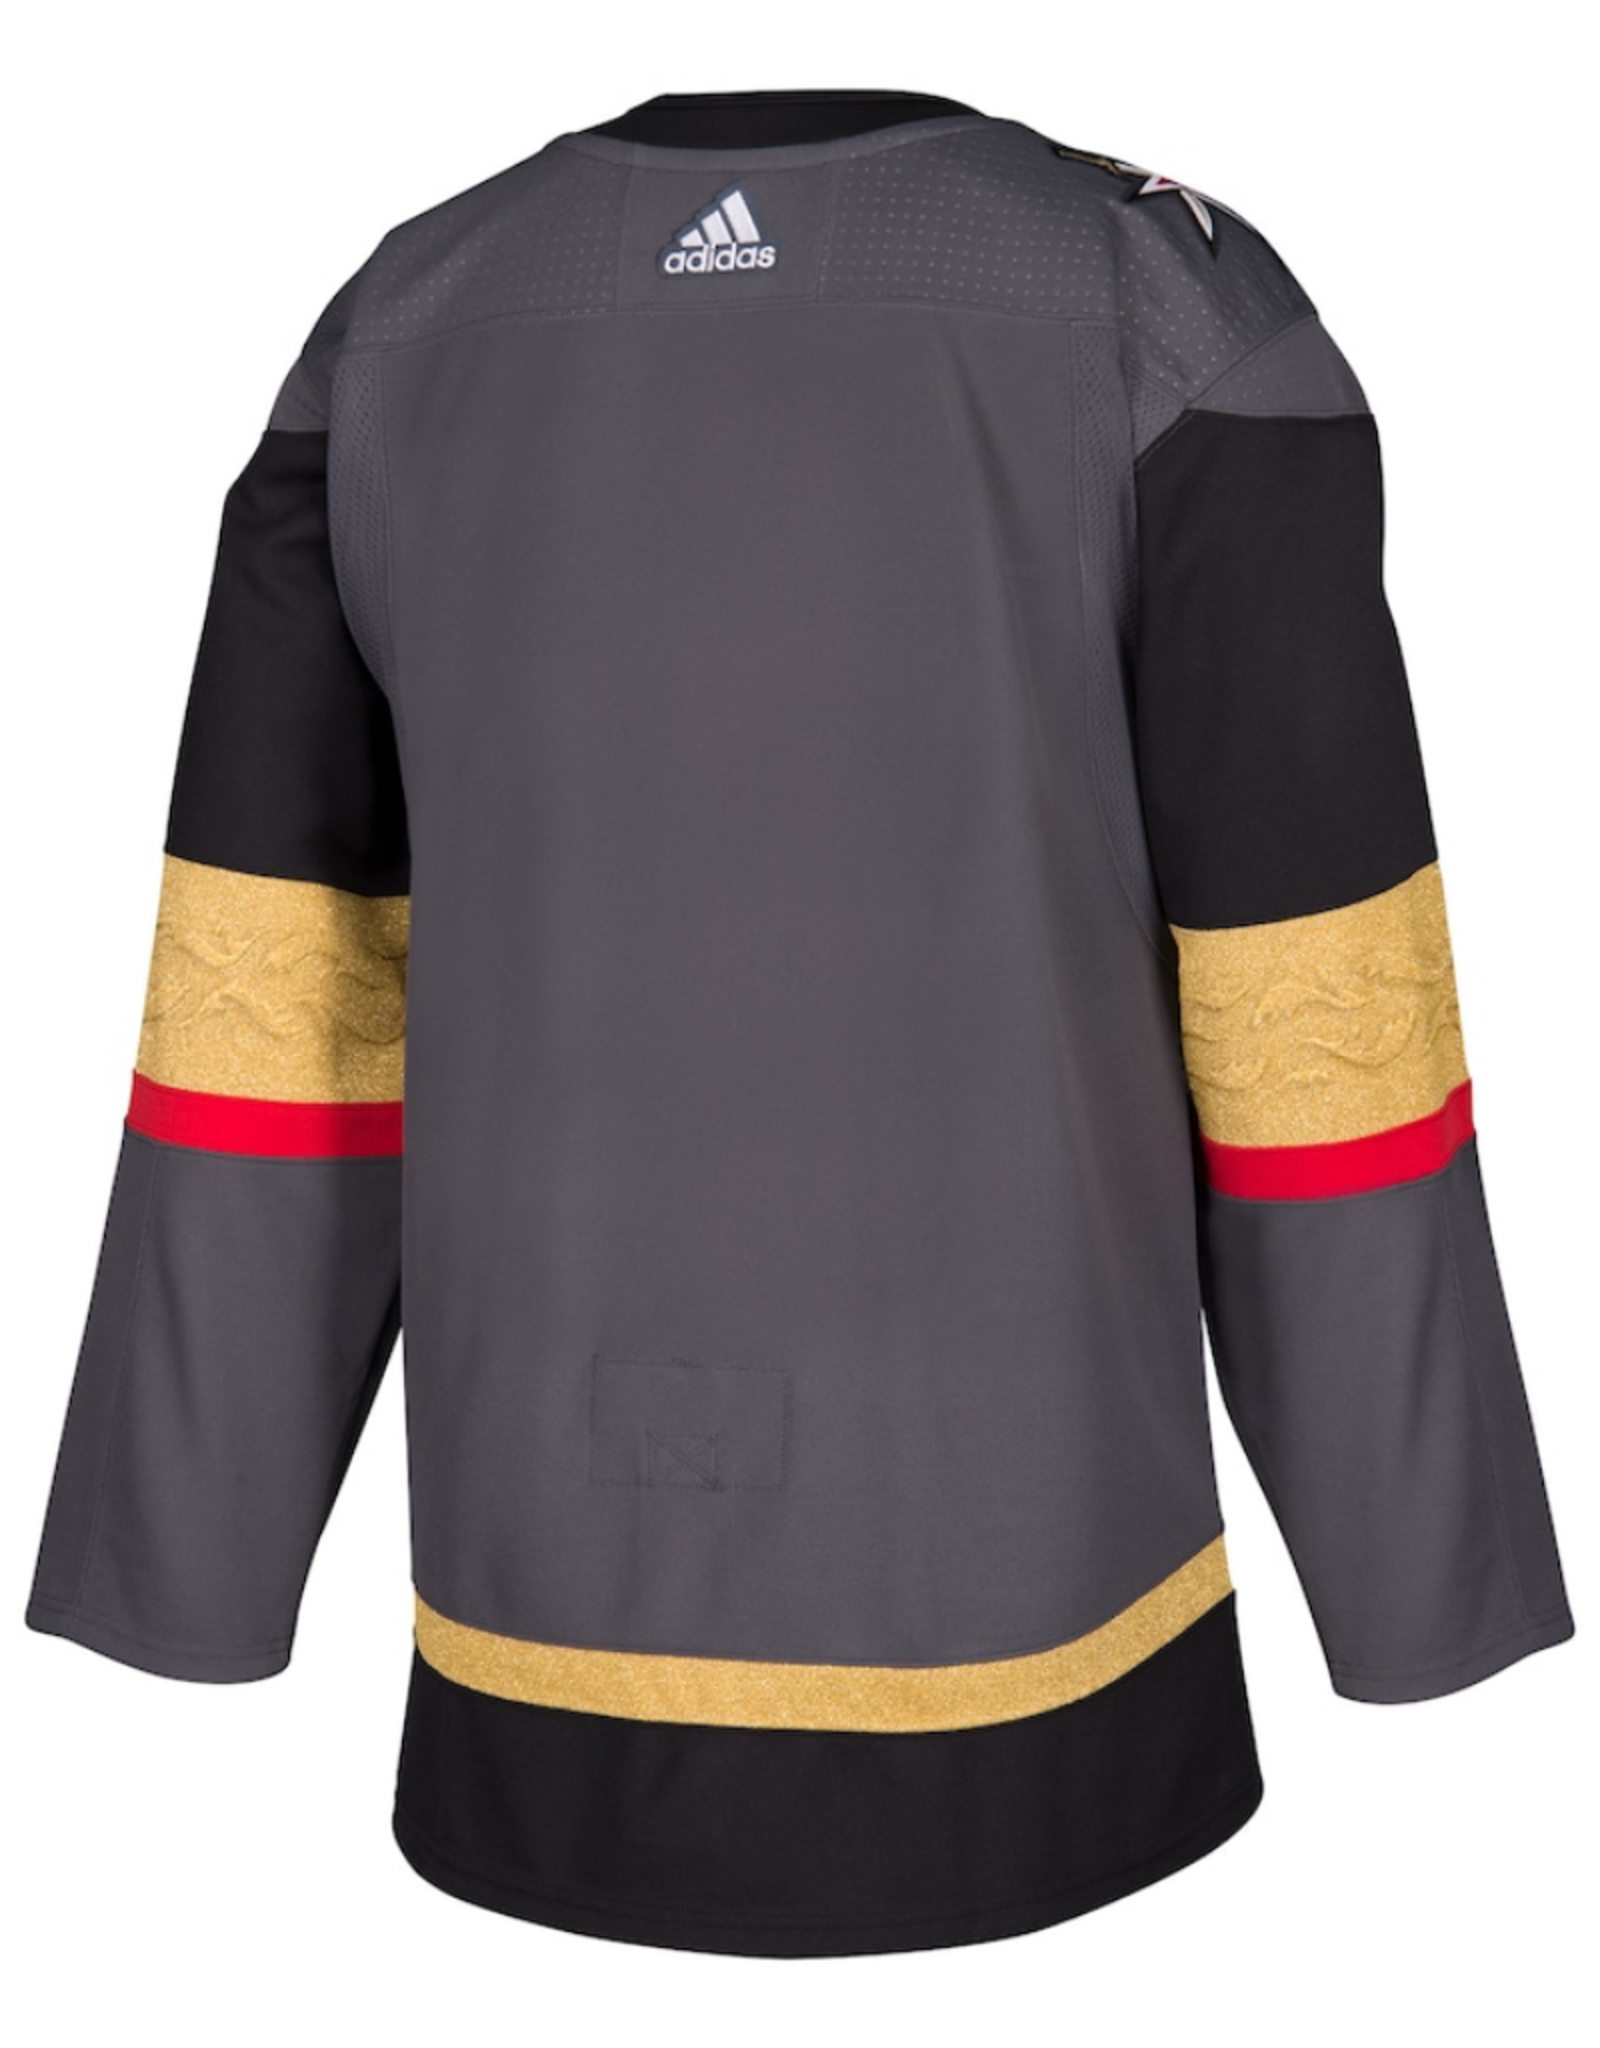 Adidas Adidas Adult Authentic Vegas Golden Knights Jersey Grey